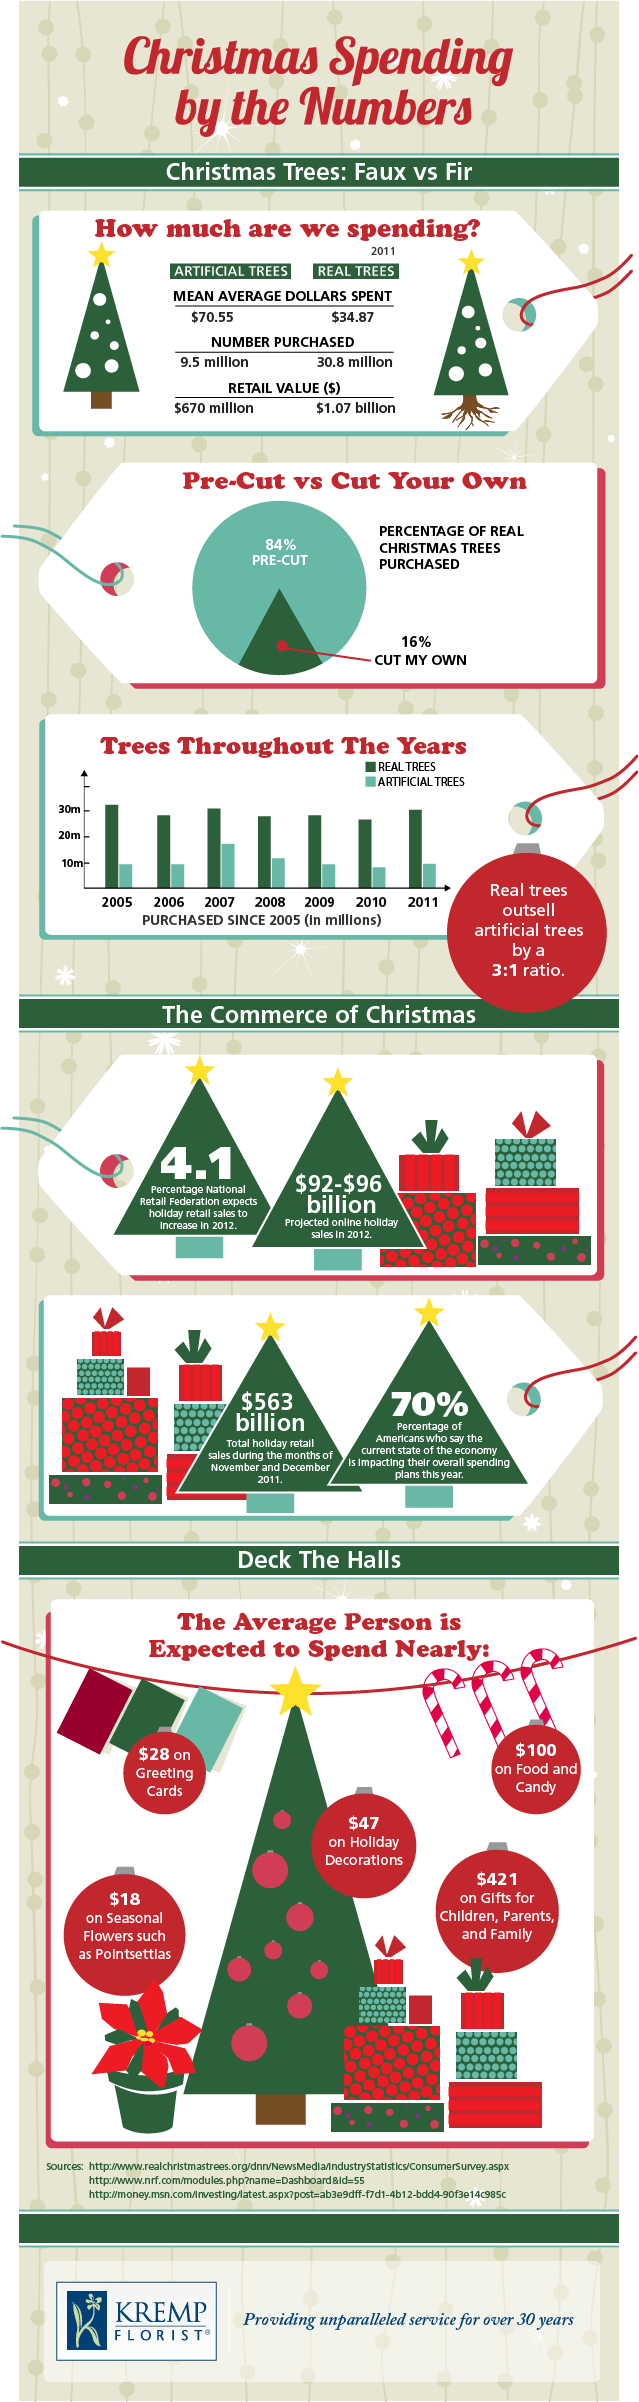 christmas-spending-by-the-numbers_50b3aeb7582e6